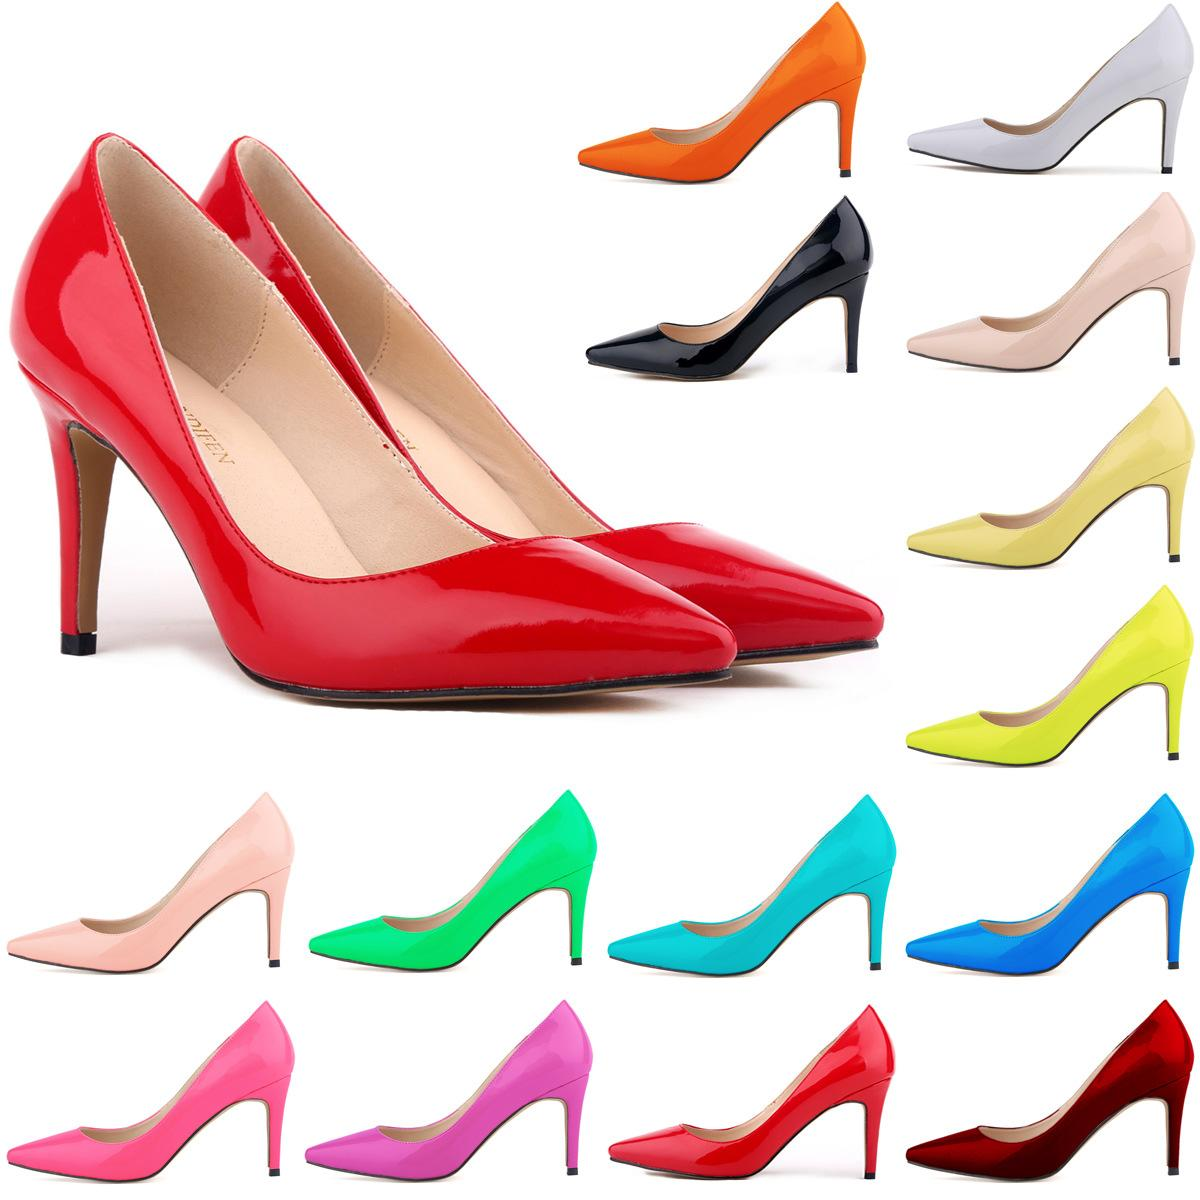 Zapatos Mujer Women Patent Leather Mid High Heels Pointed Corset Work Pumps  Court Shoes Us 4 11 D0074 Wedge Shoes Casual Shoes For Men From ... af2a2f28034d